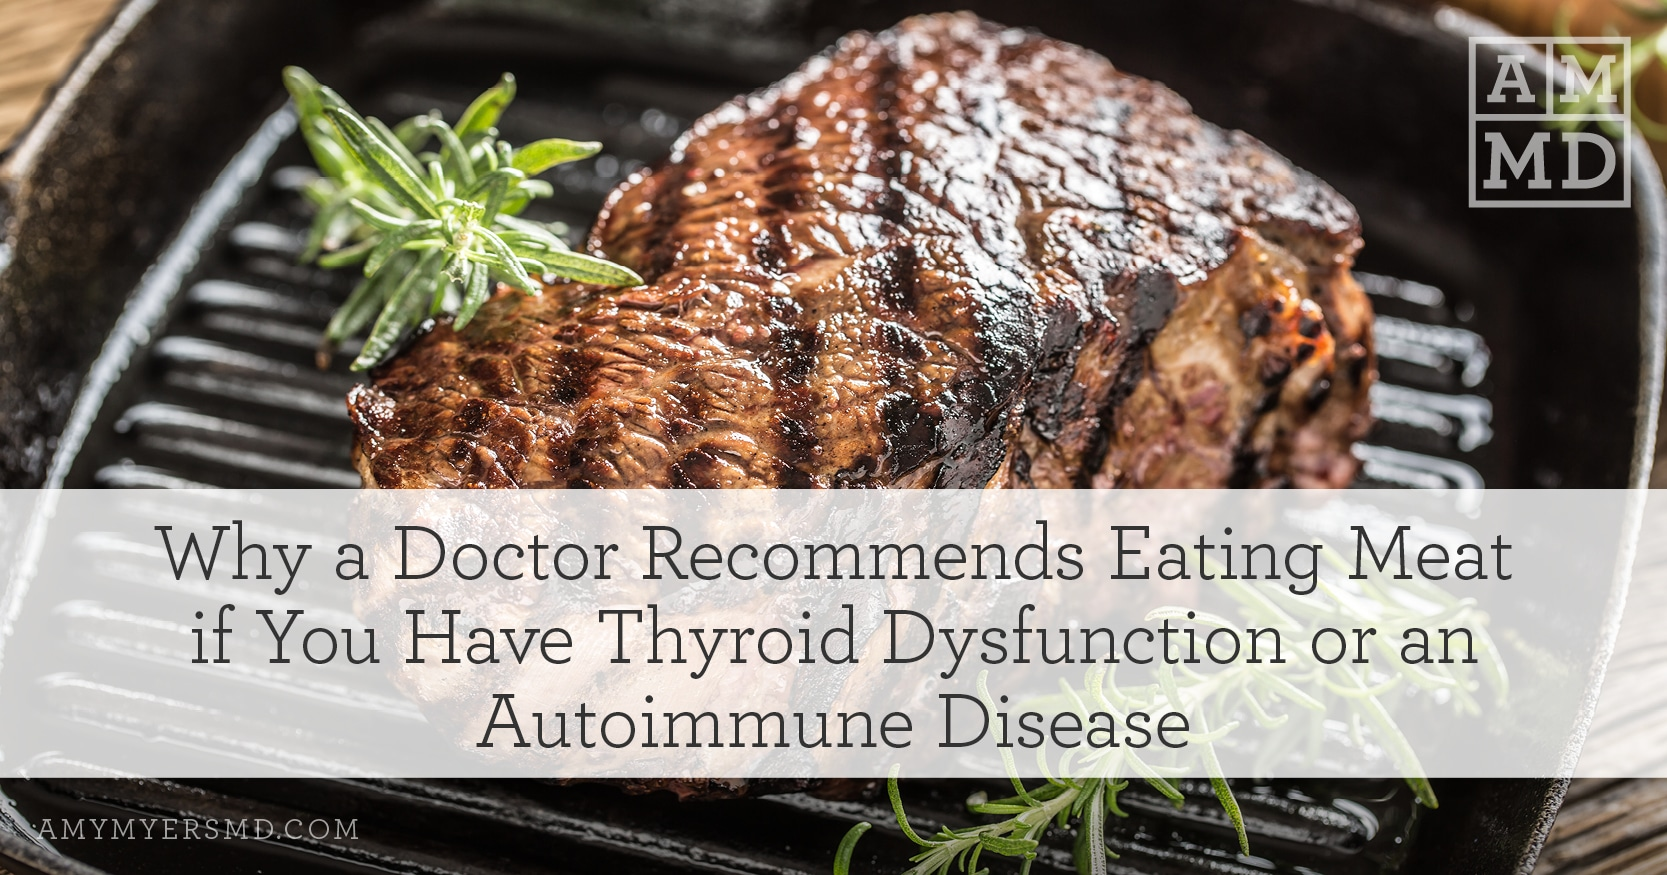 Why a Doctor Recommends Eating Meat if You Have Thyroid Dysfunction or an Autoimmune Disease - Meat on a Grill - Featured image - Amy Myers MD